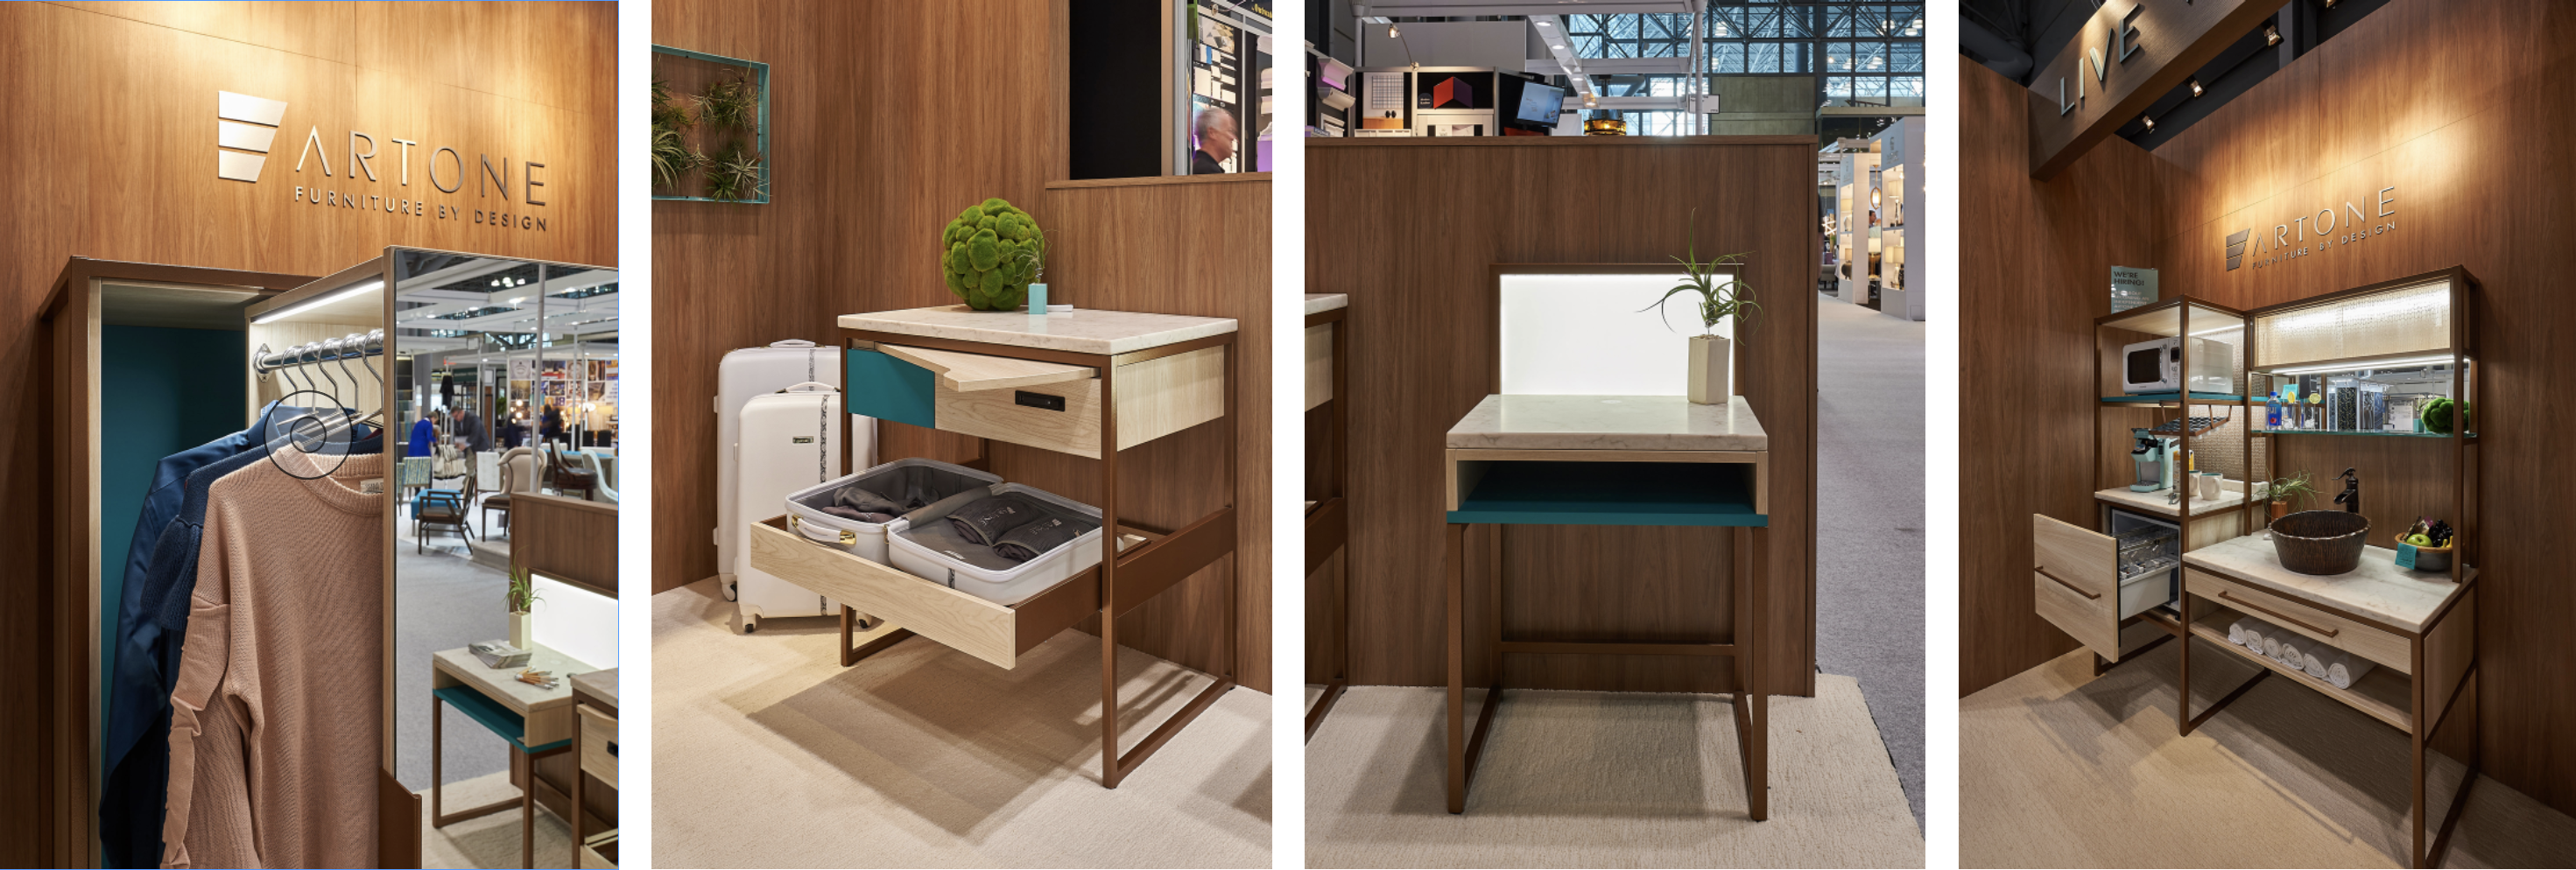 Why Choose A Hospitality Furniture Collection For Your Next Hotel Renovation